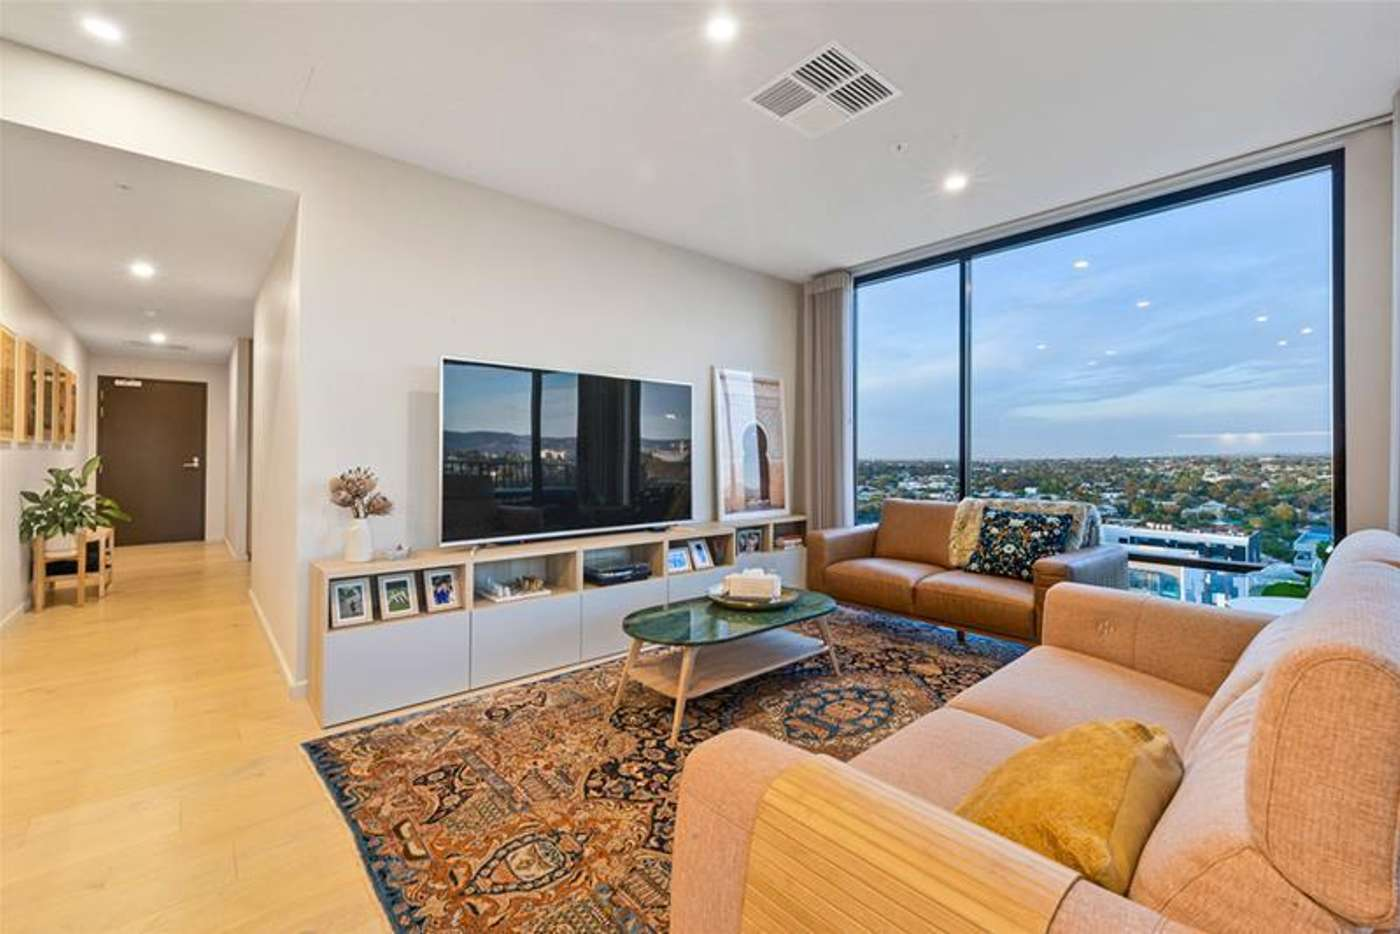 Fifth view of Homely apartment listing, 1102/10 Park Terrace, Bowden SA 5007